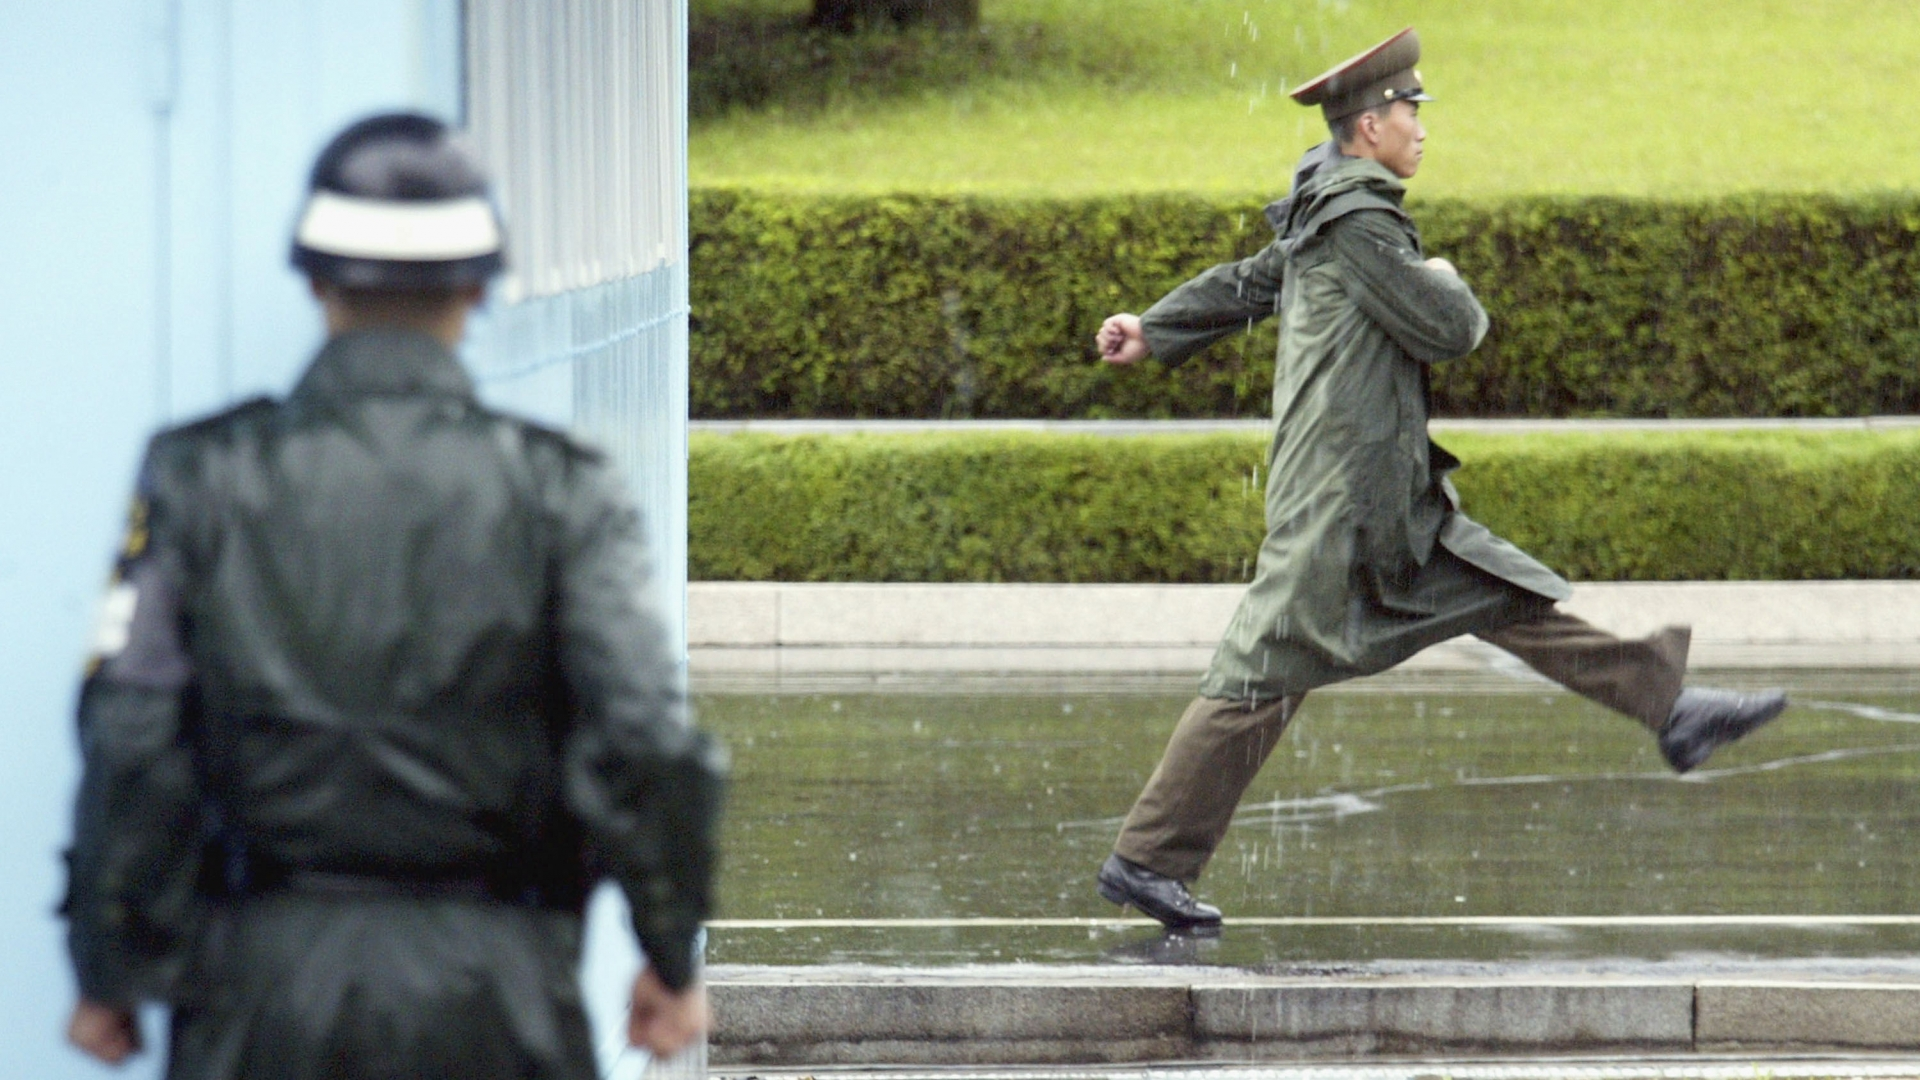 A South Korean soldier (L) looks at a North Korean soldier as he marches past at the truce village of Panmunjom in the demilitarized zone (DMZ) between South and North Korea. (Credit: Chung Sung-Jun/Getty Images)